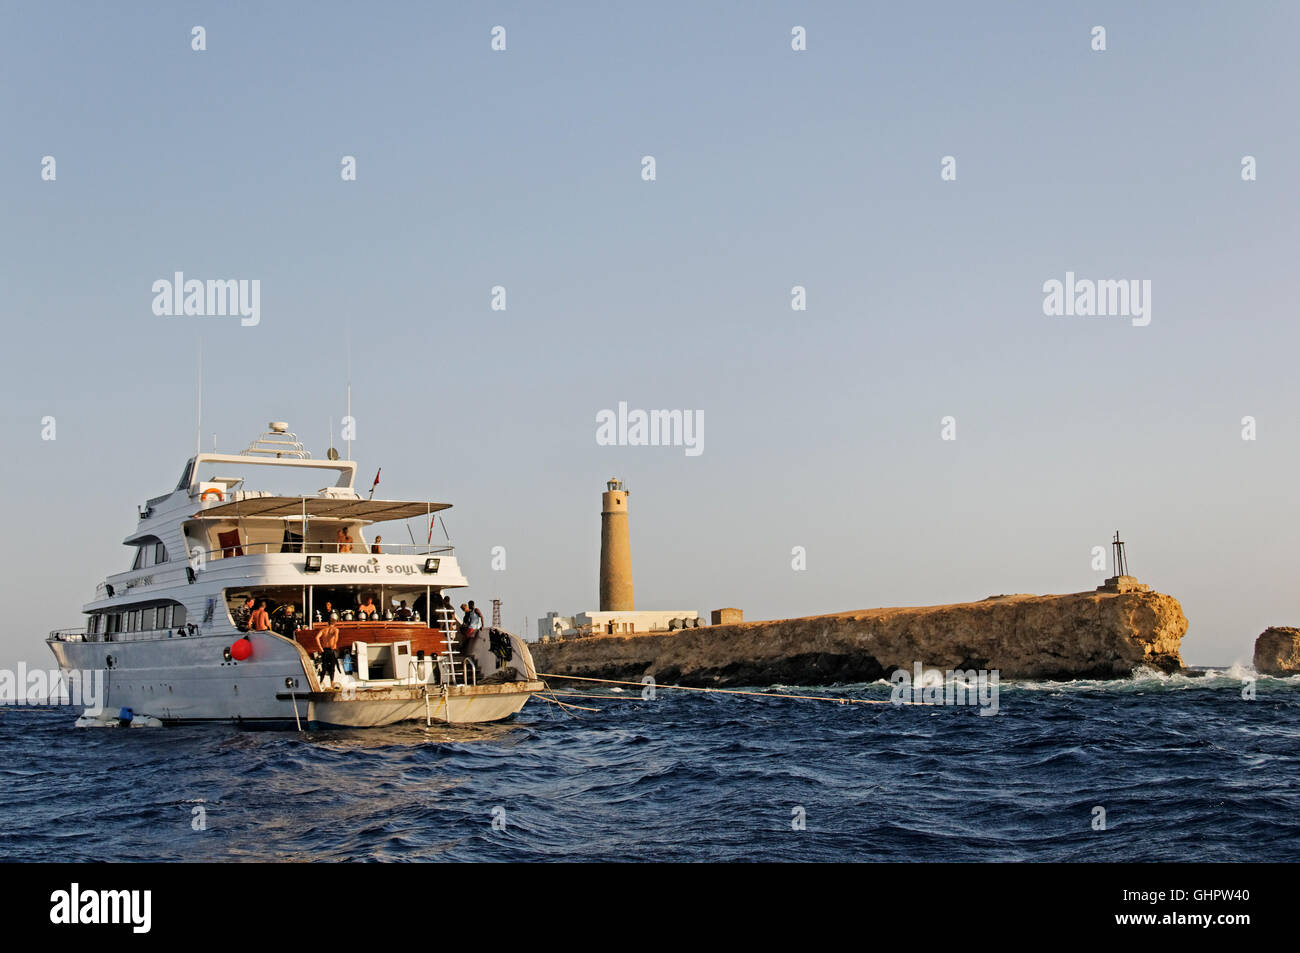 scuba diving Boat on Big Brother, Brother Islands, Brothers, Red Sea, Egypt, Africa - Stock Image